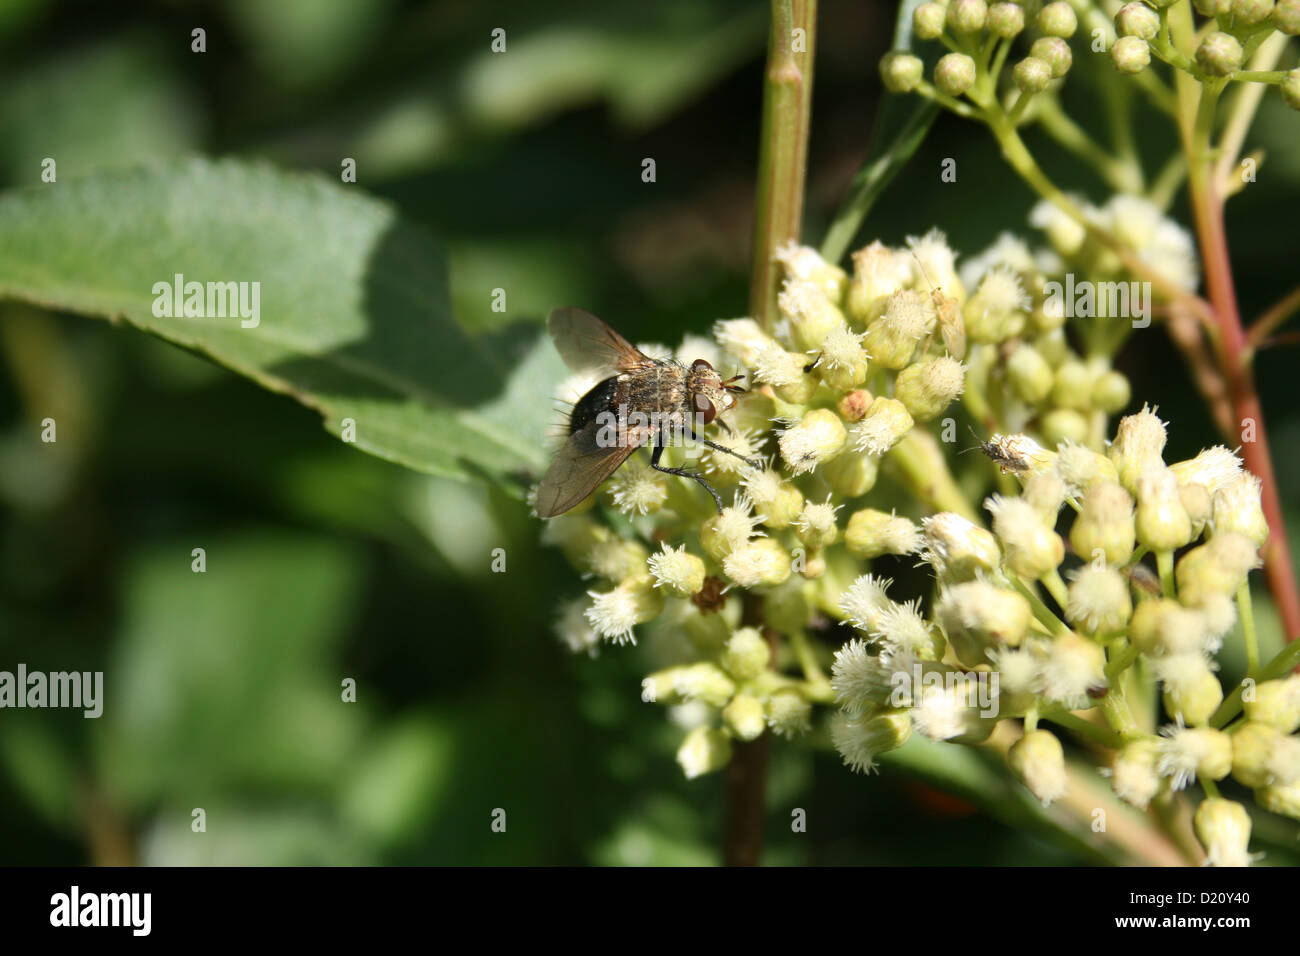 A Brown Eyed Fly On A Bush With Small White Flowers In Cotacachi